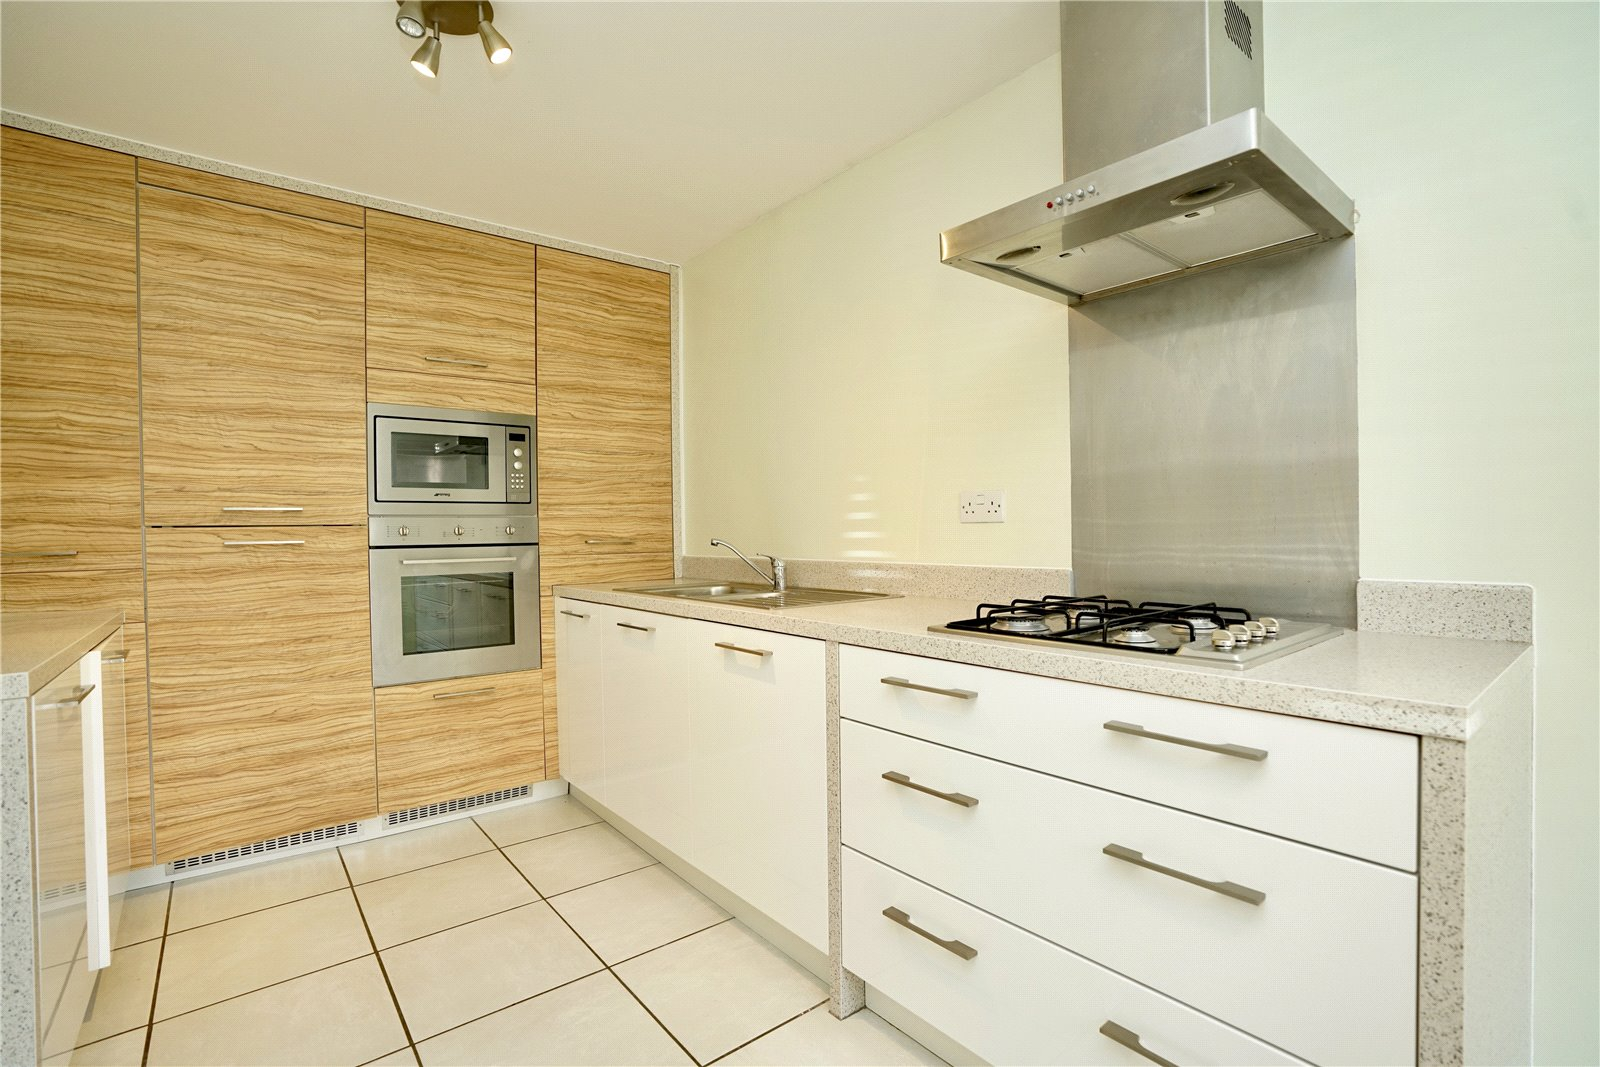 3 bed house for sale in St. Neots, PE19 6AJ - Property Image 1